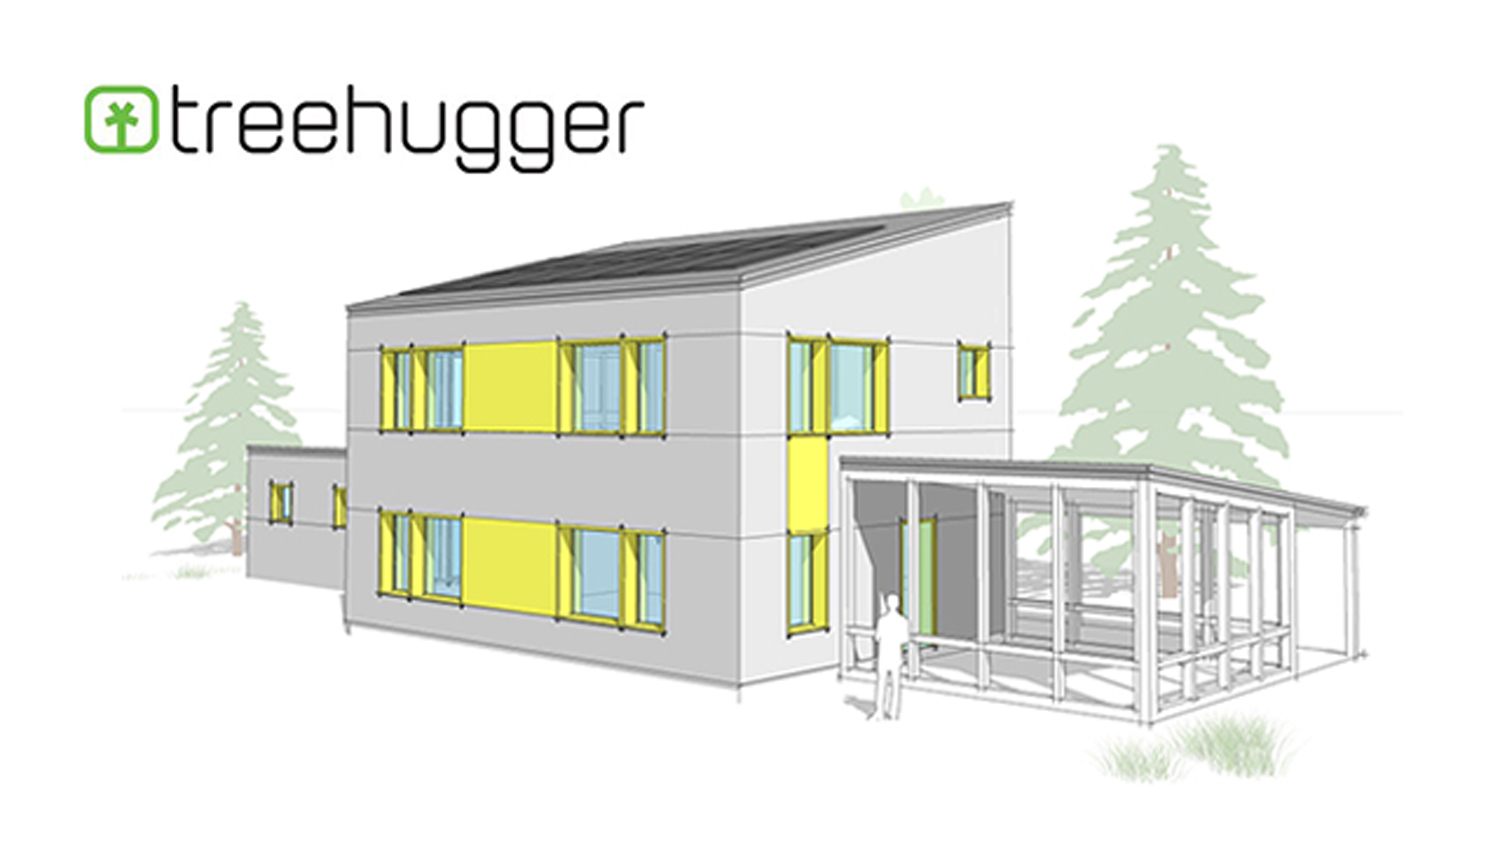 Ecocor Passive House treehugger